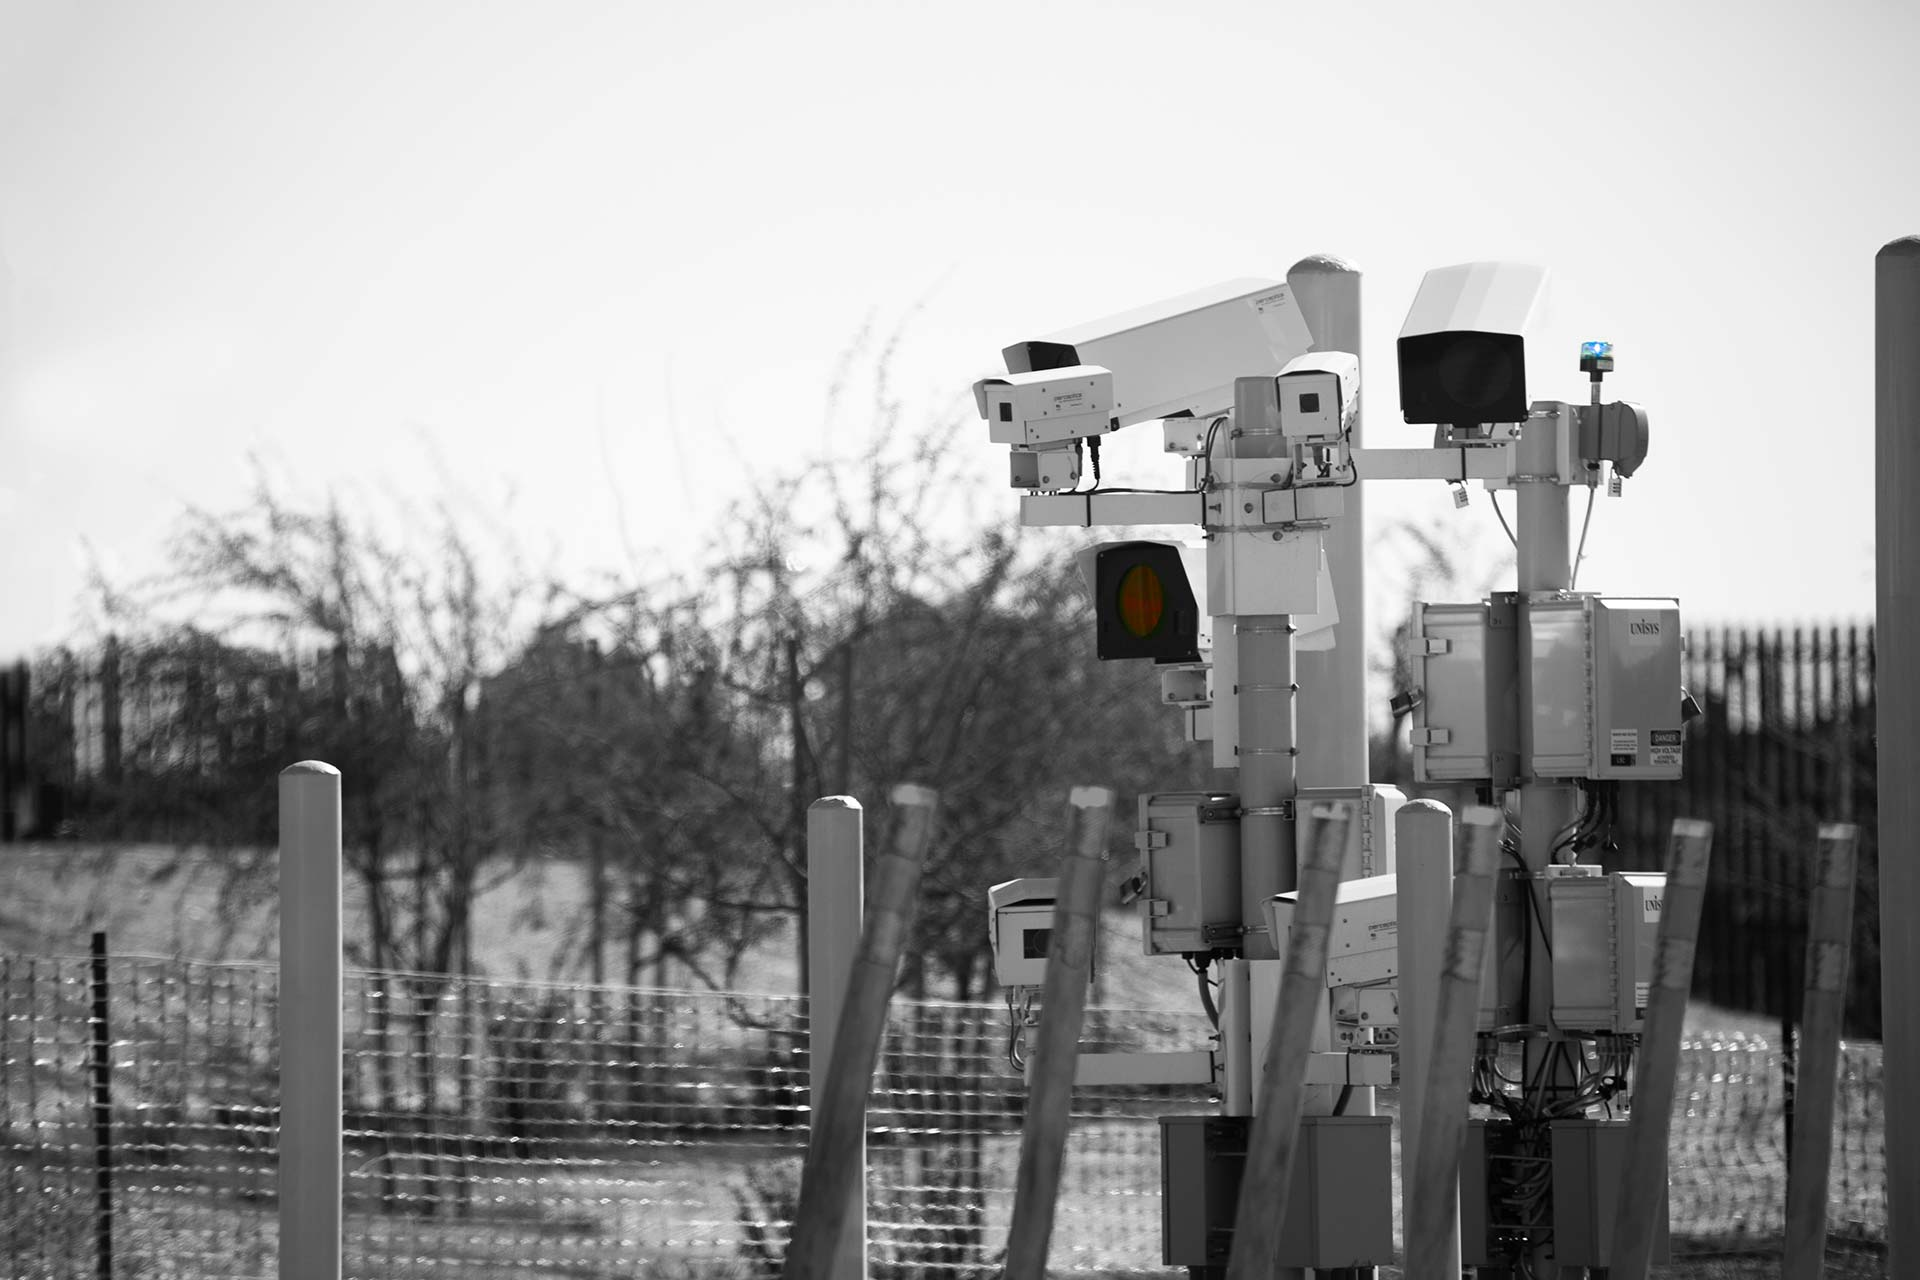 Security cameras and sensors at border fence